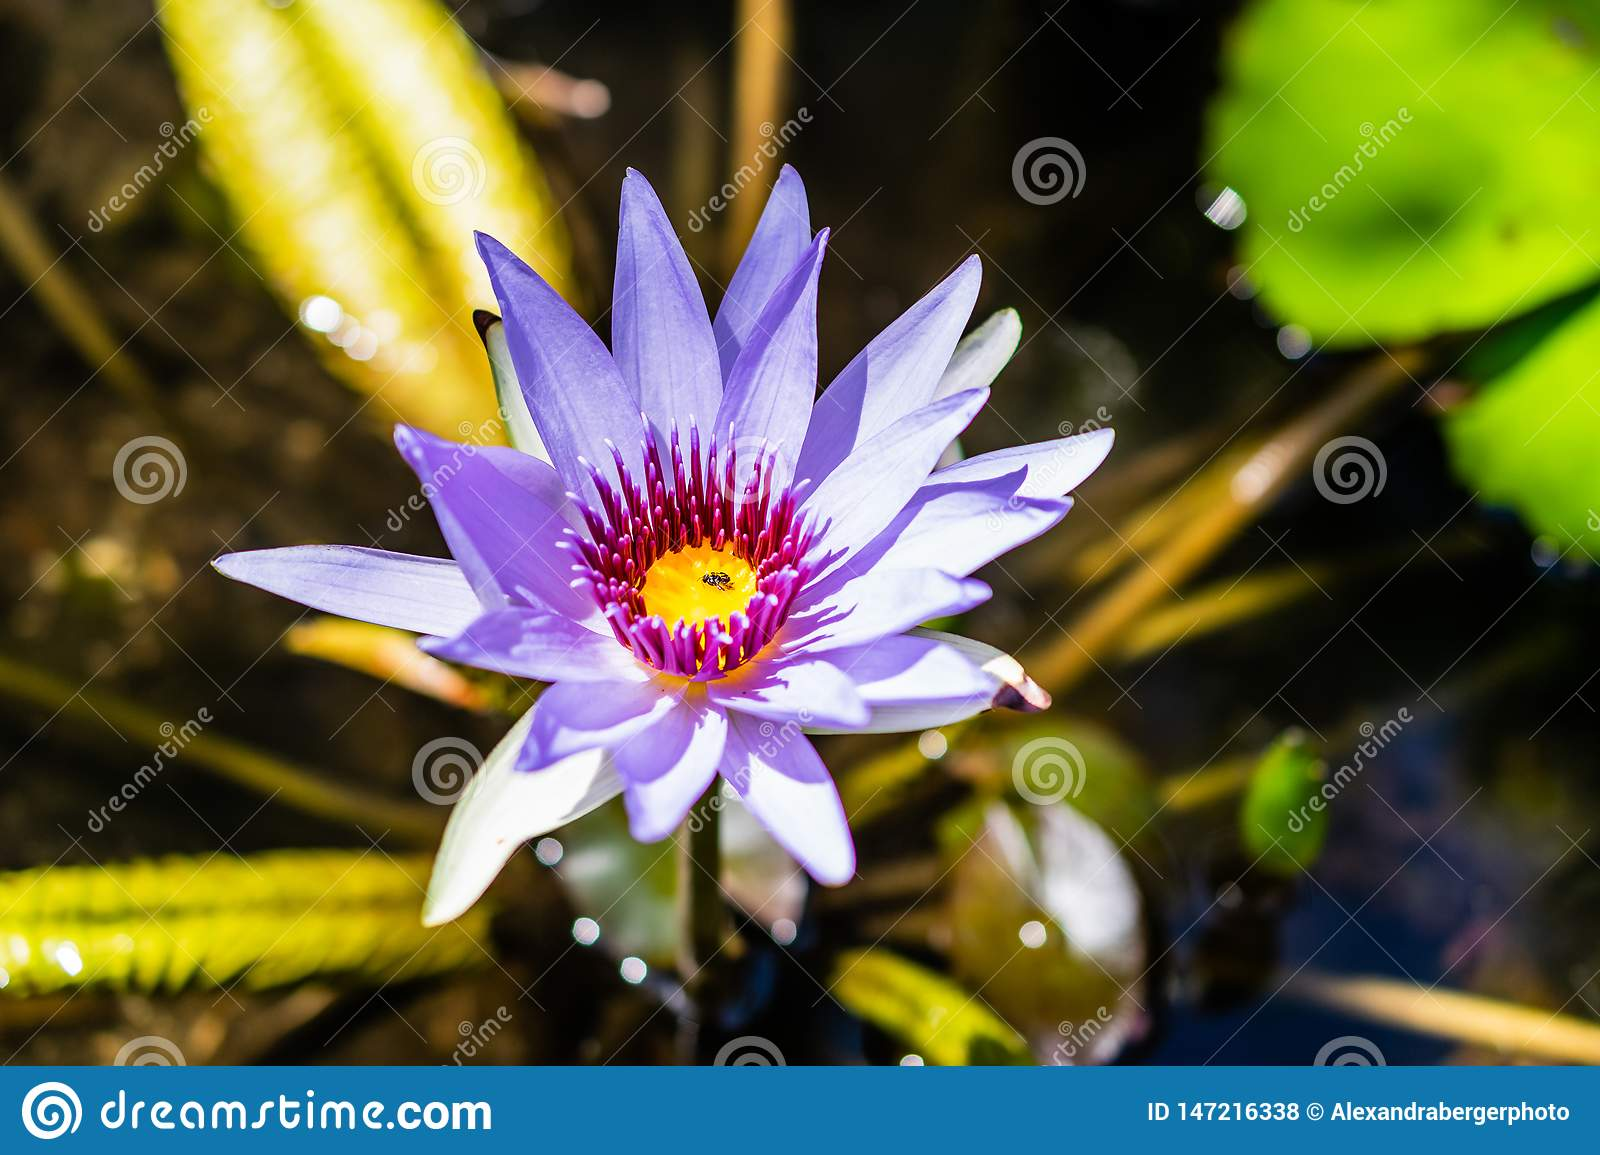 Open water lily with little fly inside the blossom